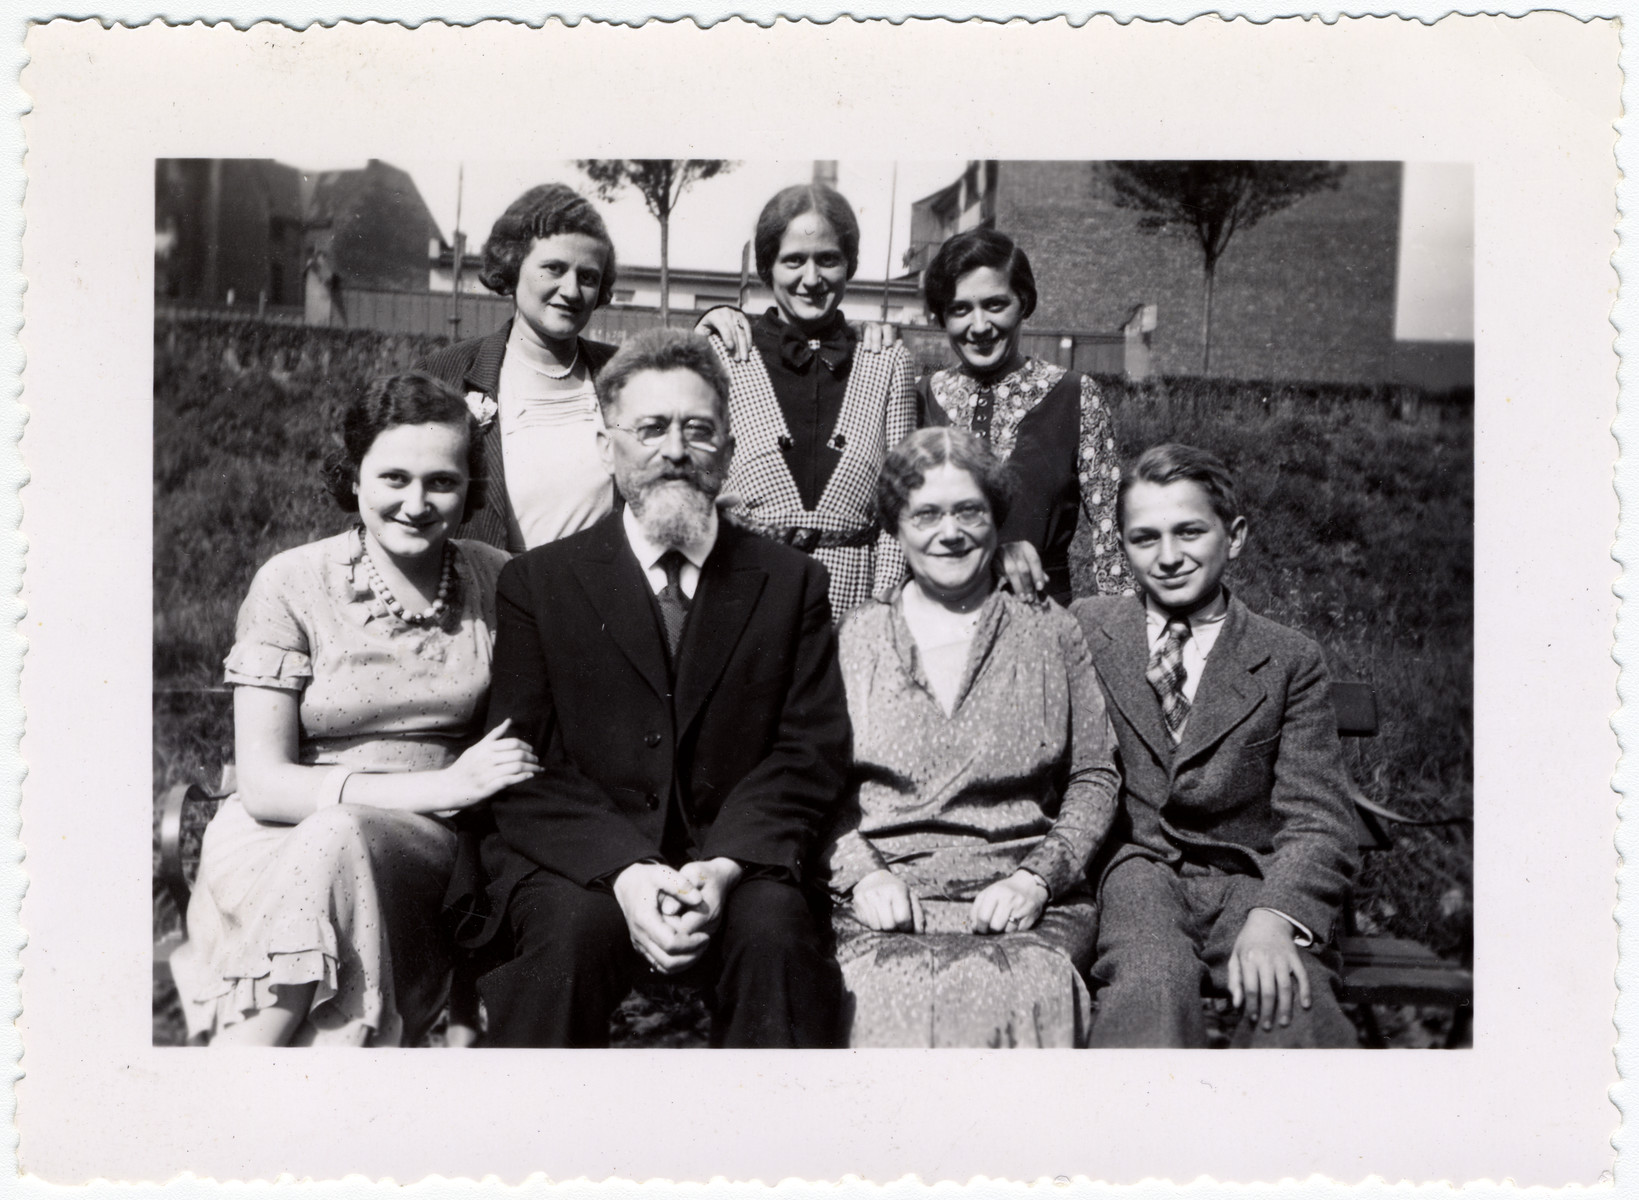 Group portrait of the Wetzler family.  Pictured in the center are Salomon Wetzler and his wife.  Their son Edgar is seated on the right.  Lilly (later Weilheimer) is standing in the center.  Also pictured are Nelly (later Stern), Alice (later Strassburger) and Emmy (later Rosenfelder).